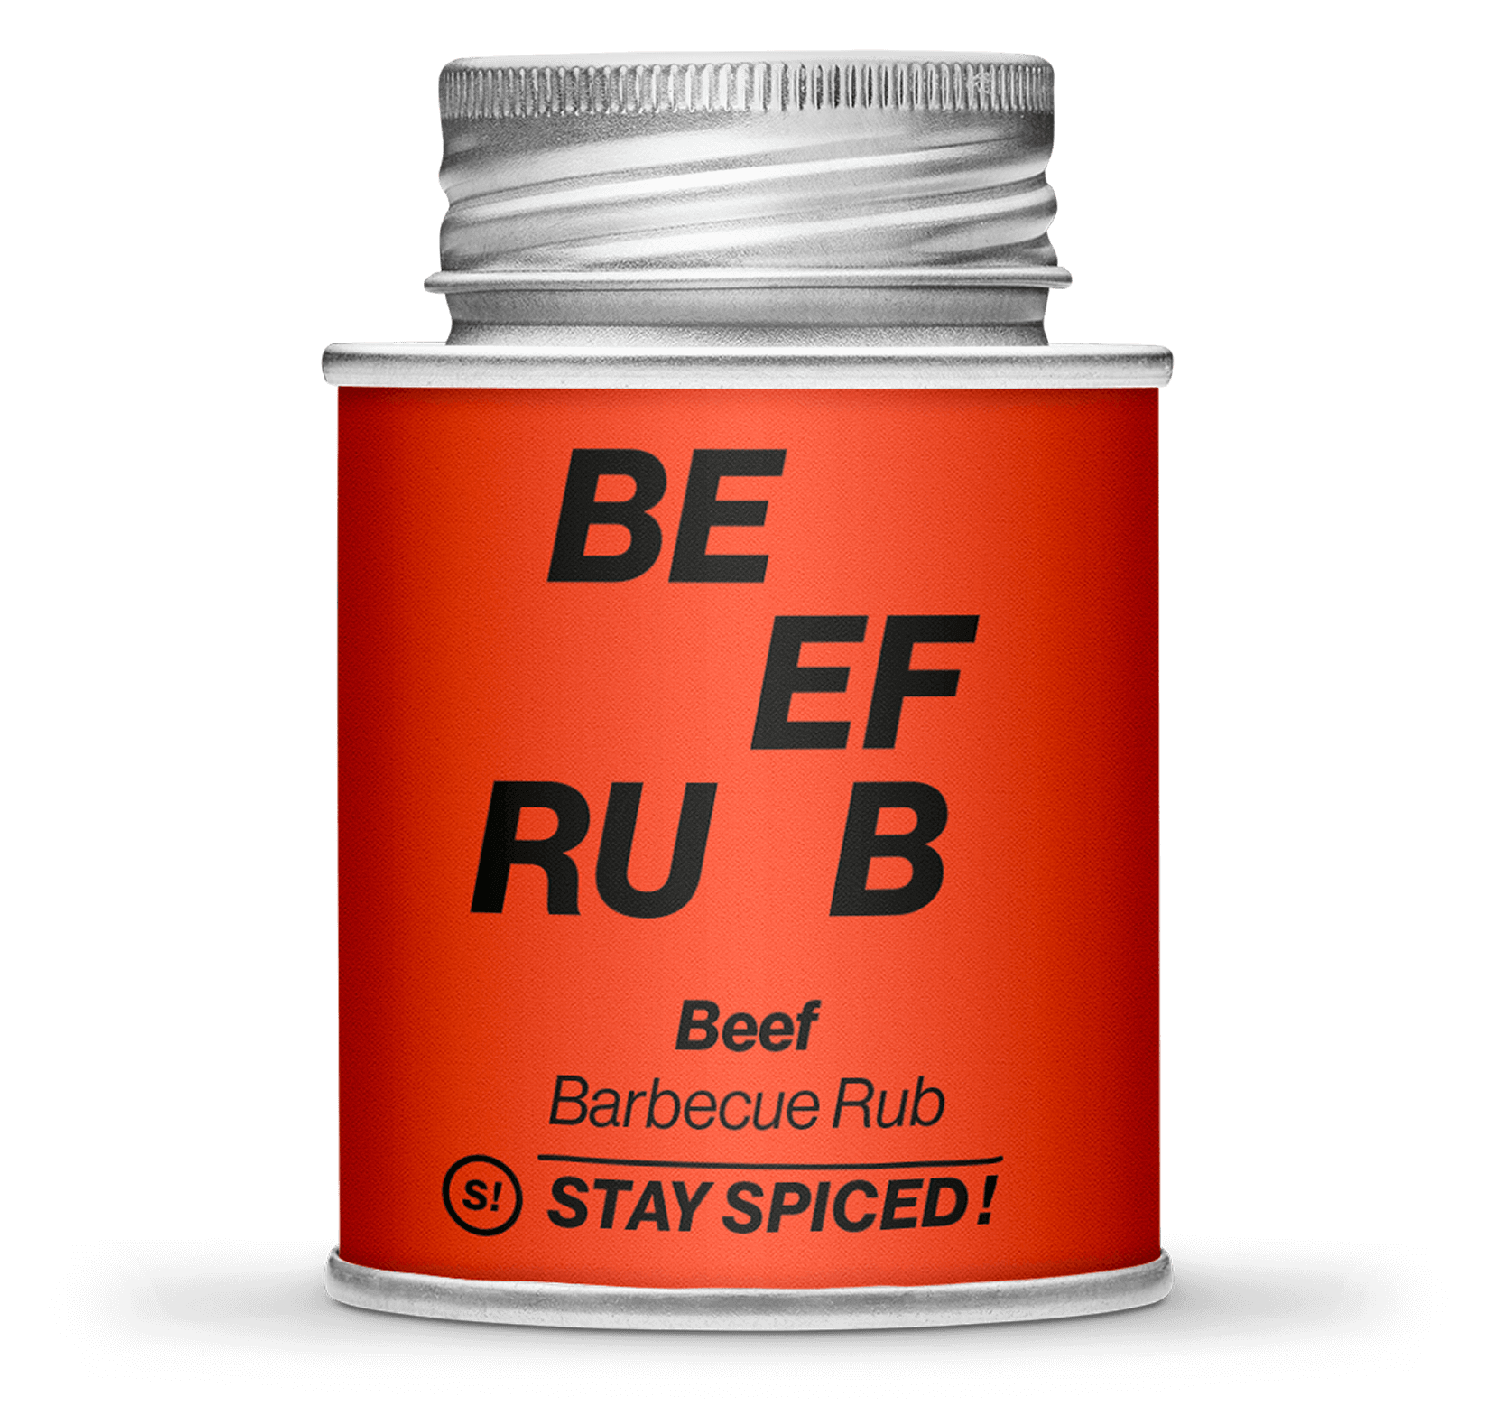 Barbecue-for-Champions - BBQ Beef-Rub